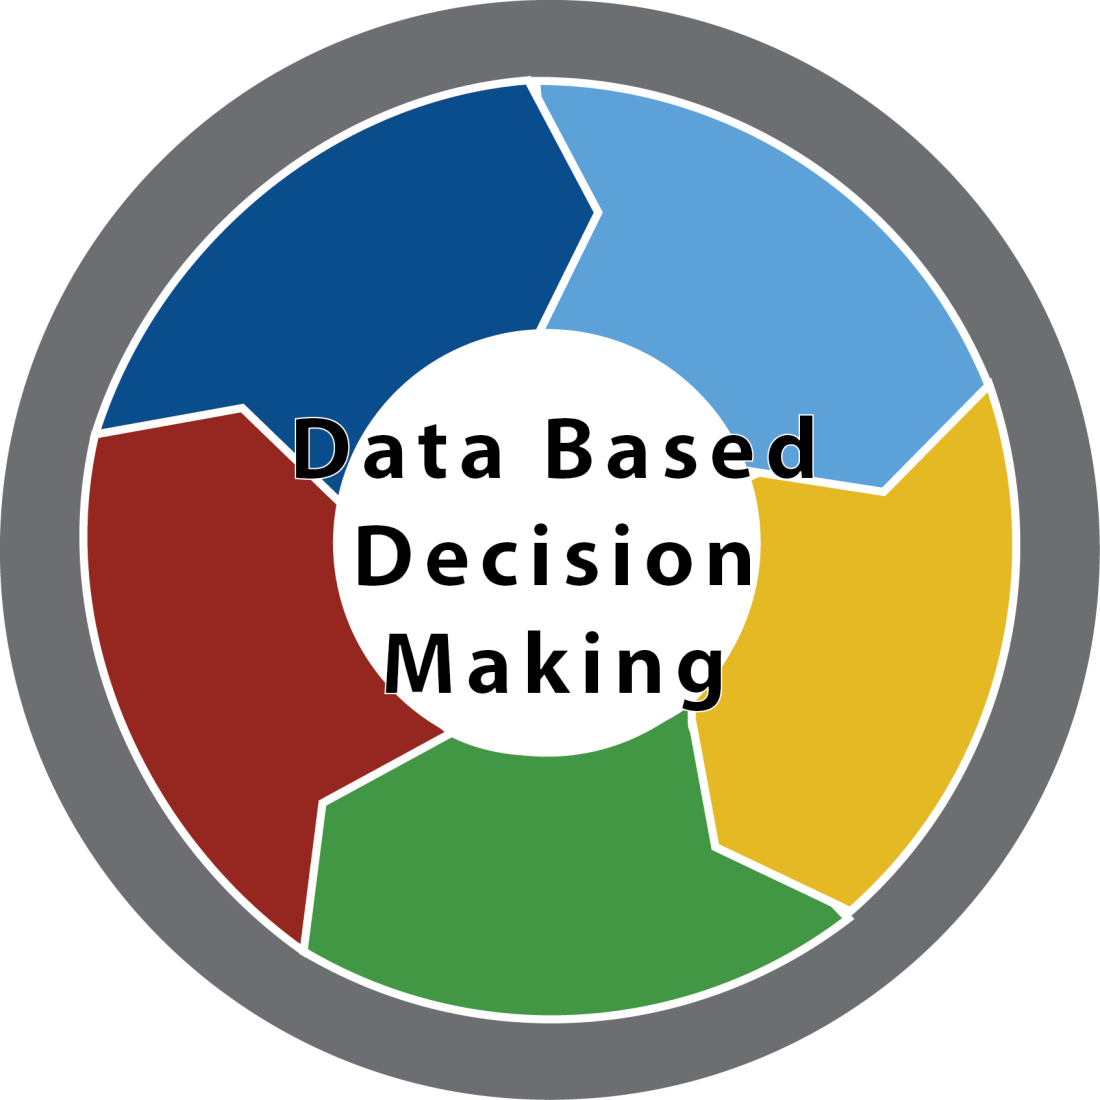 information based decision making The baldrige excellence framework (education) and its criteria empower your organization to reach its goals,  the baldrige framework is based on core values and concepts that represent beliefs and behaviors found in high-performing organizations:  are you using the results in organizational decision making.